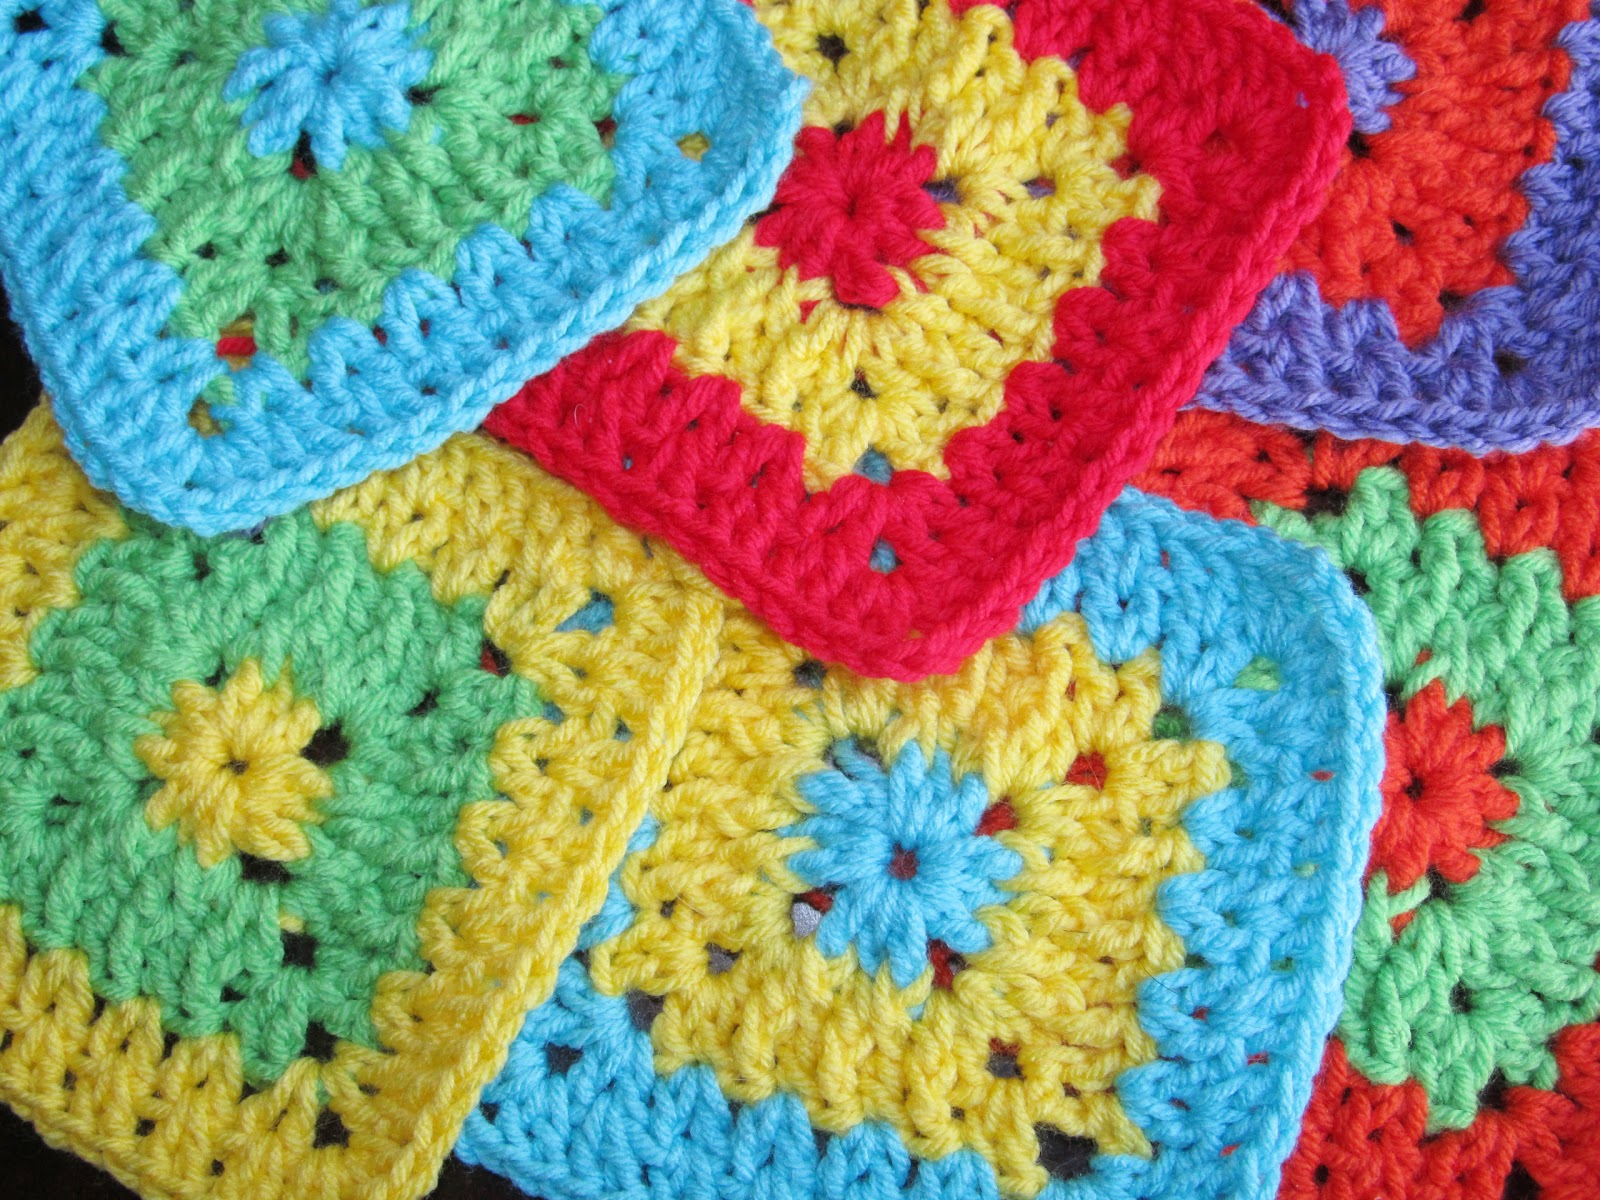 Crochet Patterns Squares : ... Crochet and Knit: SmoothFox Cool 2B Square - Free Crochet Pattern